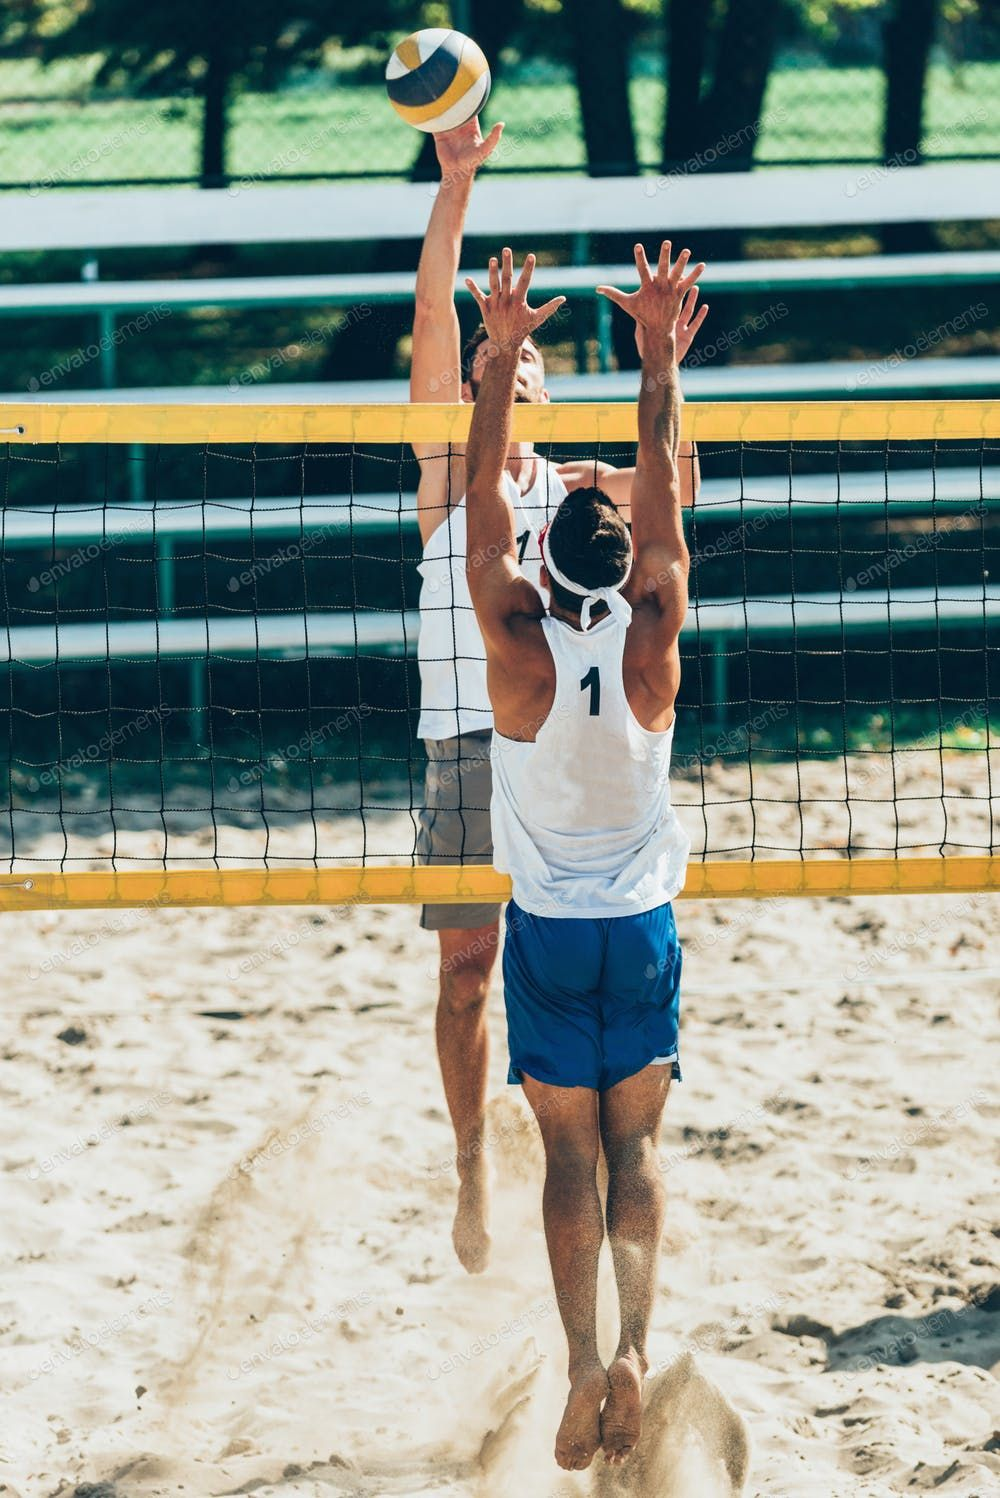 Beach Volleyball Game By Microgen S Photos Ad Affiliate Beach Volleyball Game Beach Volleyball Game Volleyball Games Beach Volleyball